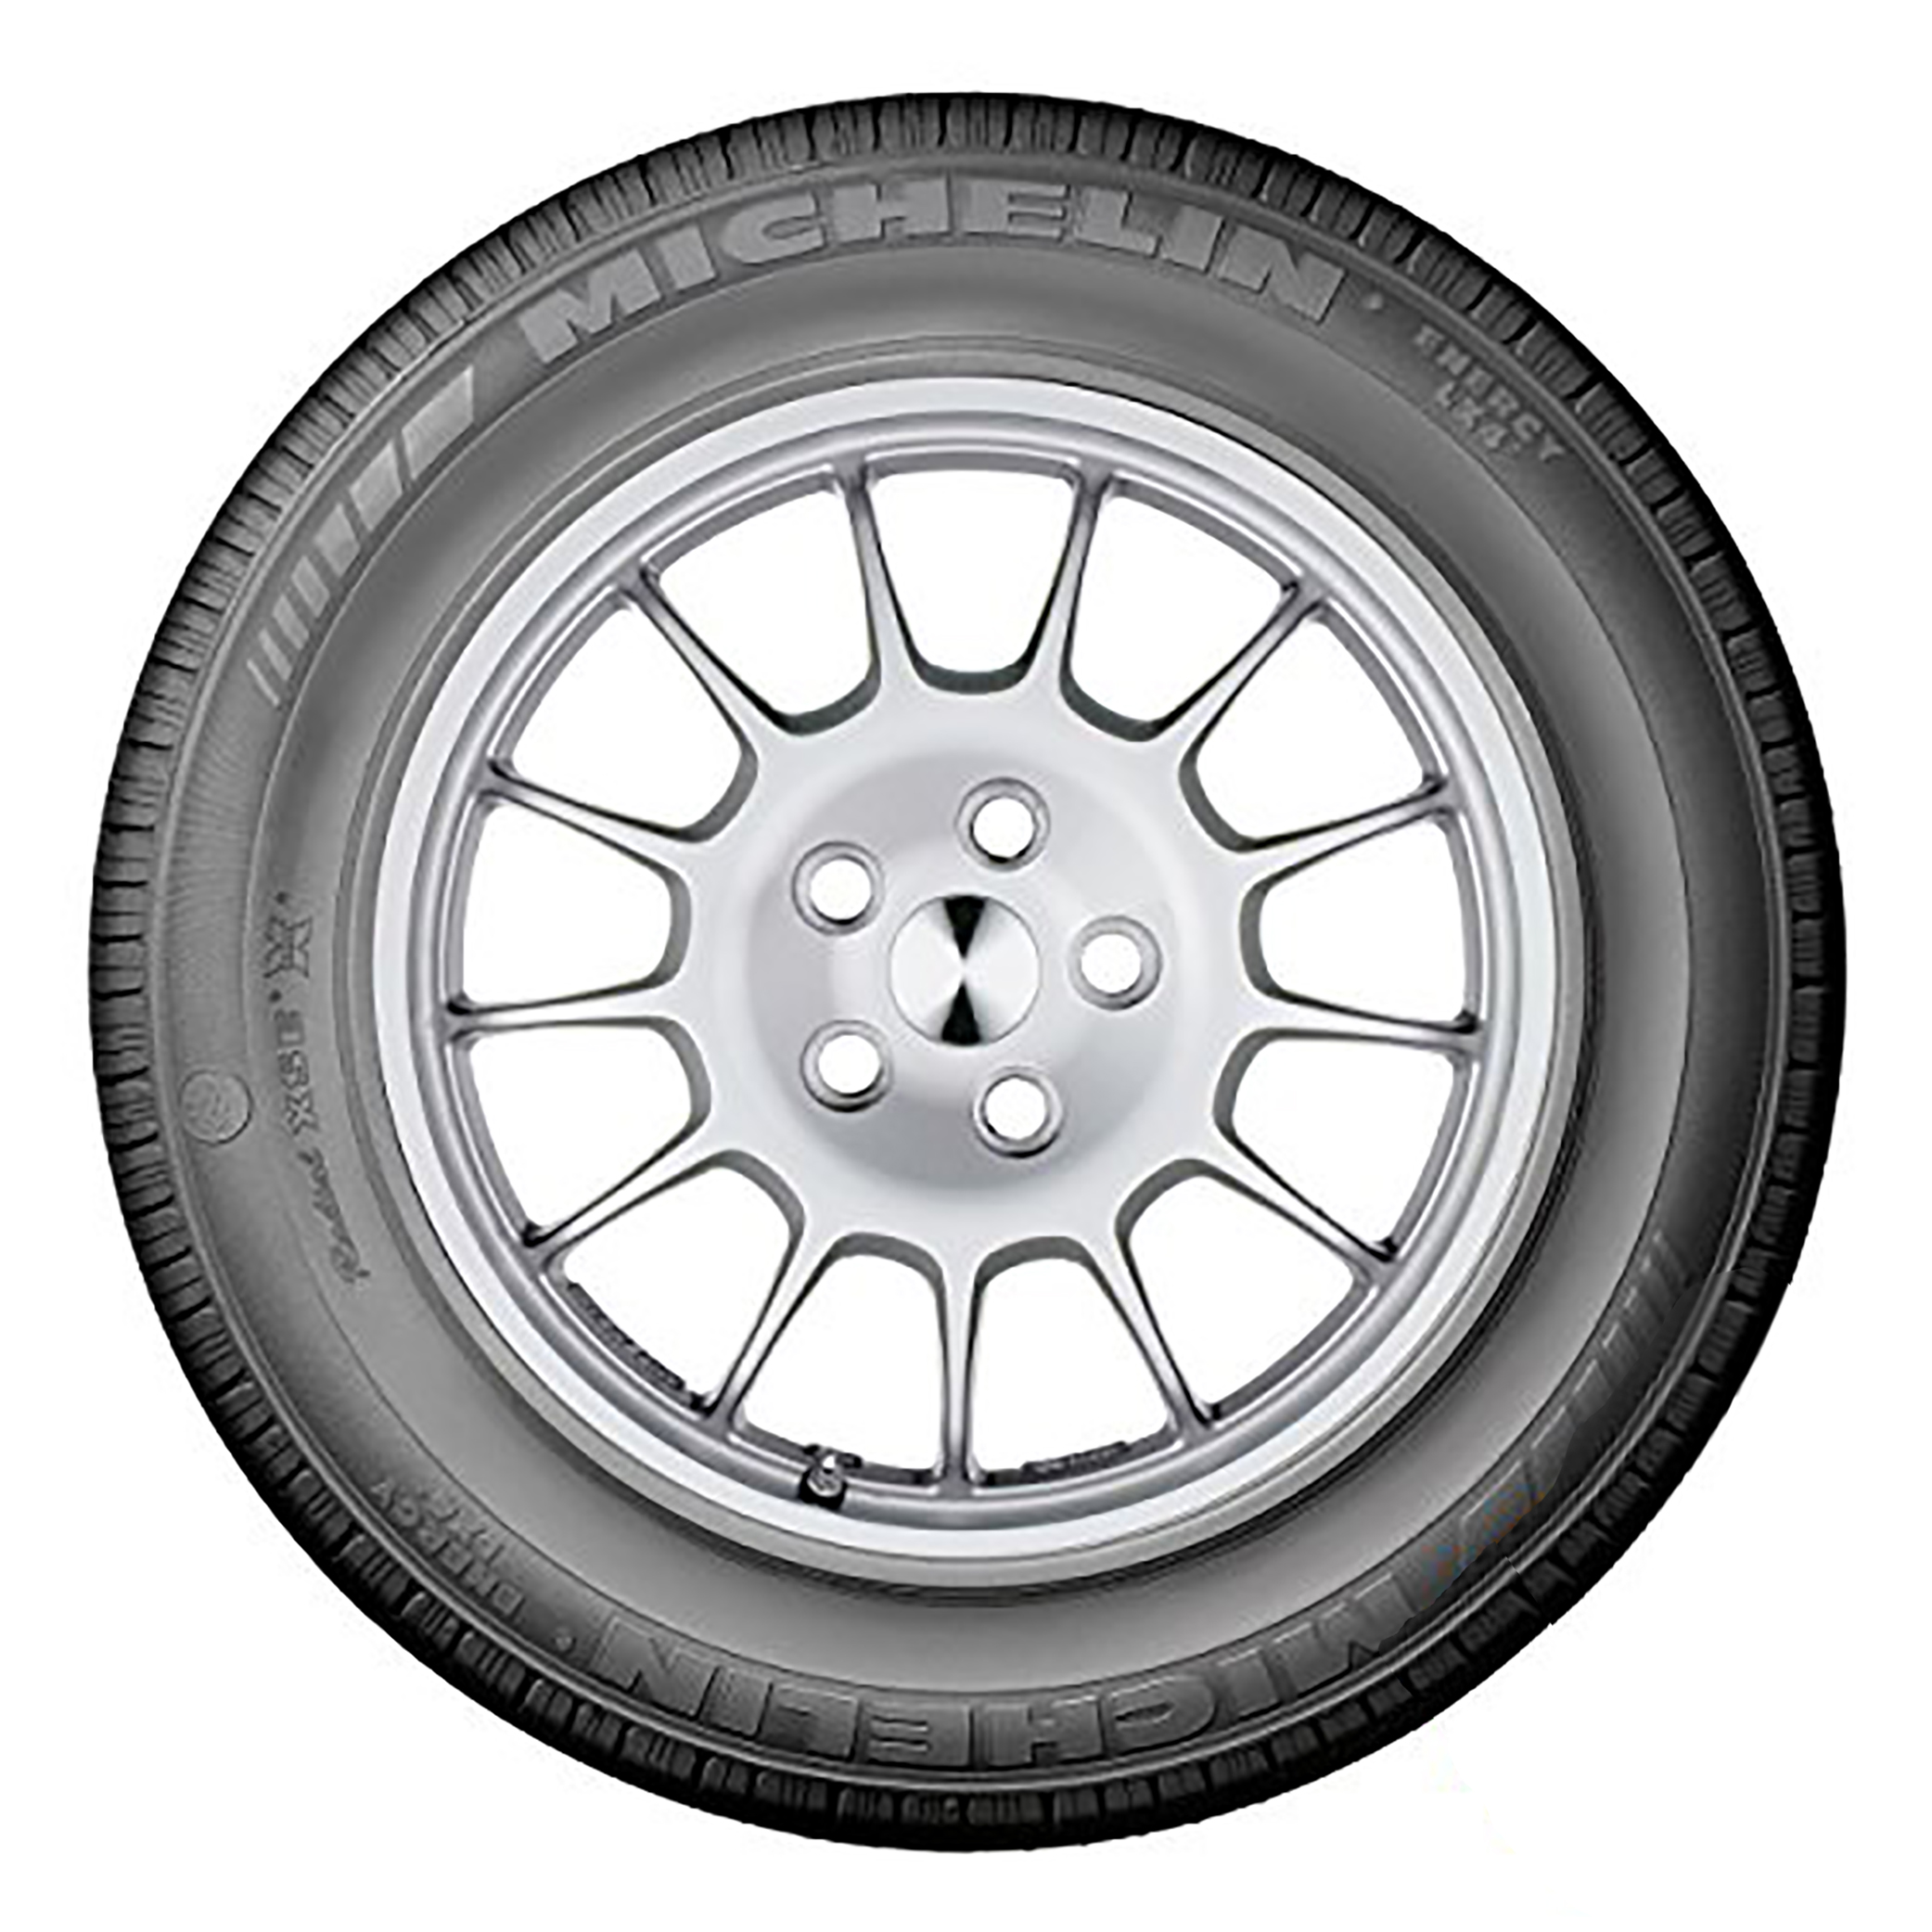 michelin energy lx4 passenger all season tire 235 60r17 102t Auto Shop michelin energy lx4 passenger all season tire 235 60r17 102t walmart